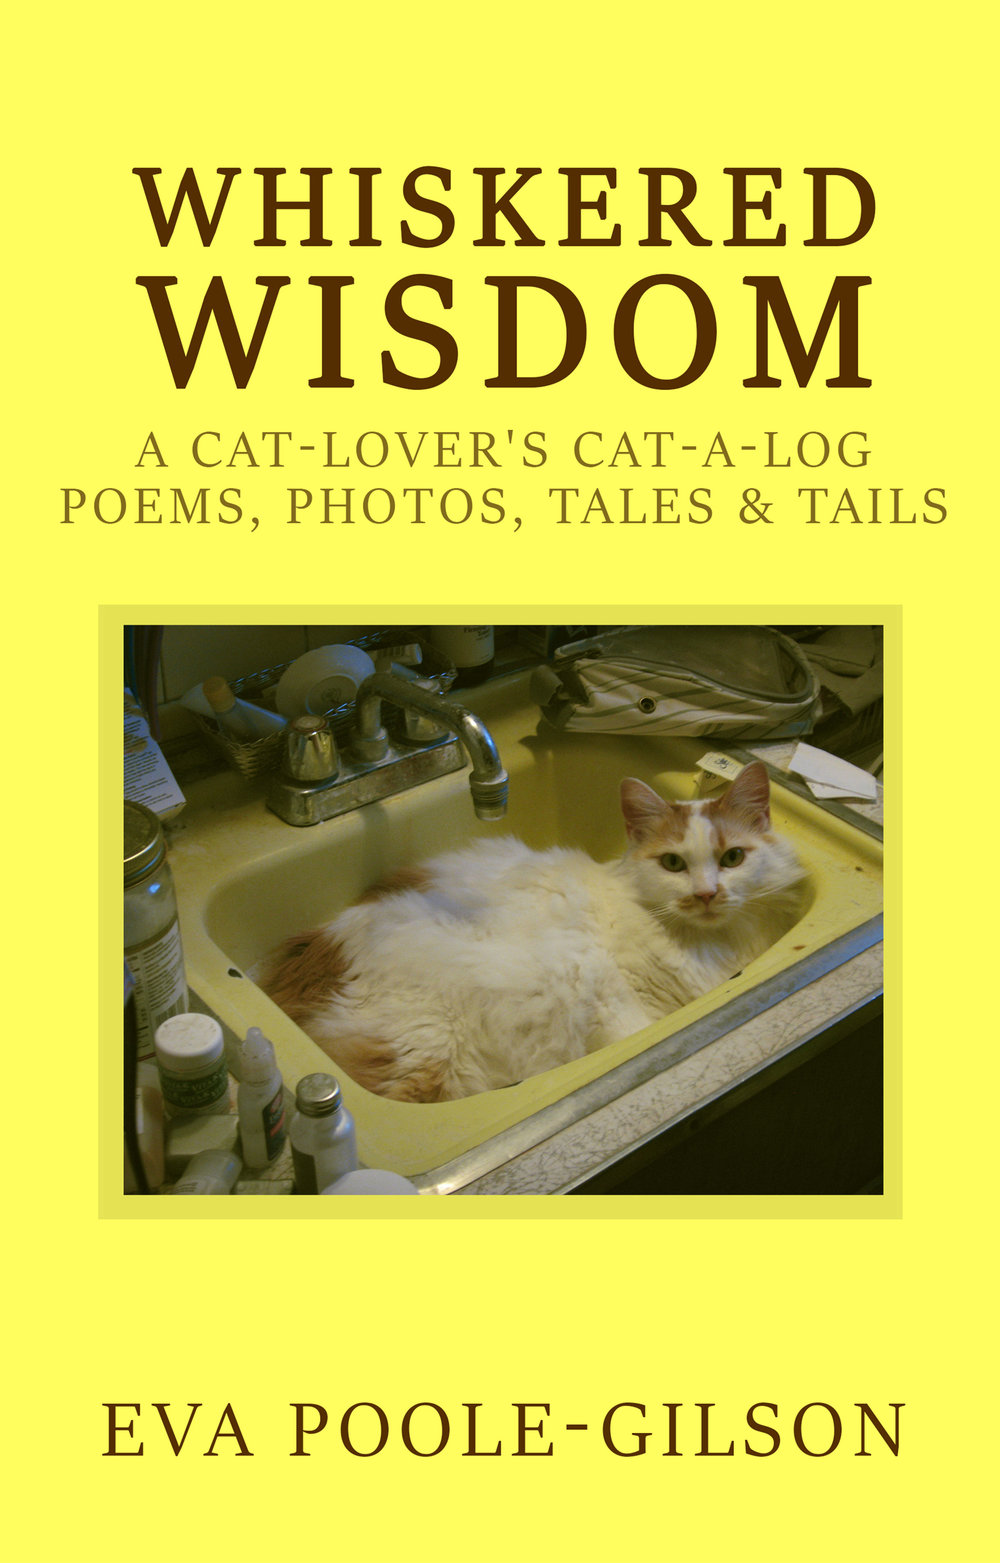 "Whiskered Wisdom - FELINE SAGES! Stories, poems, and photos of the cats who've shared the author's life—delightfully FAT with LOVE & WISDOM. A people-friendly translation of their magnificent Meowese and Body Language! Whiskered Wisdom will:➤ Introduce you to precocious Mr. Edison who invents and coaches games at age 8 weeks> Entertain you with Isadora, a little prima donna dancer;➤ Awaken your childhood imagination with the tale of a basement band of cat drummers;➤ Make you laugh and cry over the cats who've touched your life & influenced your philosophy;➤ Enchant you with Shasta's story (dumpster baby, abandoned and adopted uncounted times);➤ Help you get through the loss of a pet (too adventurous or too ill to stay any longer);➤ Slyly suggest you create a word-picture treasury of your own purrfurred, feathered, or finned family;➤ Encourage even greater love for your cats, for all cats, for all pets, for all animals;➤ Cherish the world even more because cats are in it!""The pages of Whiskered Wisdom are filled with the closest to unconditional love I have ever felt…so connected to the feeling we all yearn for…it even embraces the difficult and painful phases in life…."" – Sacha""Peaches is one Beautiful Cat… Those eyes! Omg! Wow!"" – Rusty Kavendek""You have such a gift for putting my feline's attitude into words. You must me a ""mom"" to a cat…otherwise you would not know the attributes of their 'royal highnesses'!""– Rita Ginocchio"